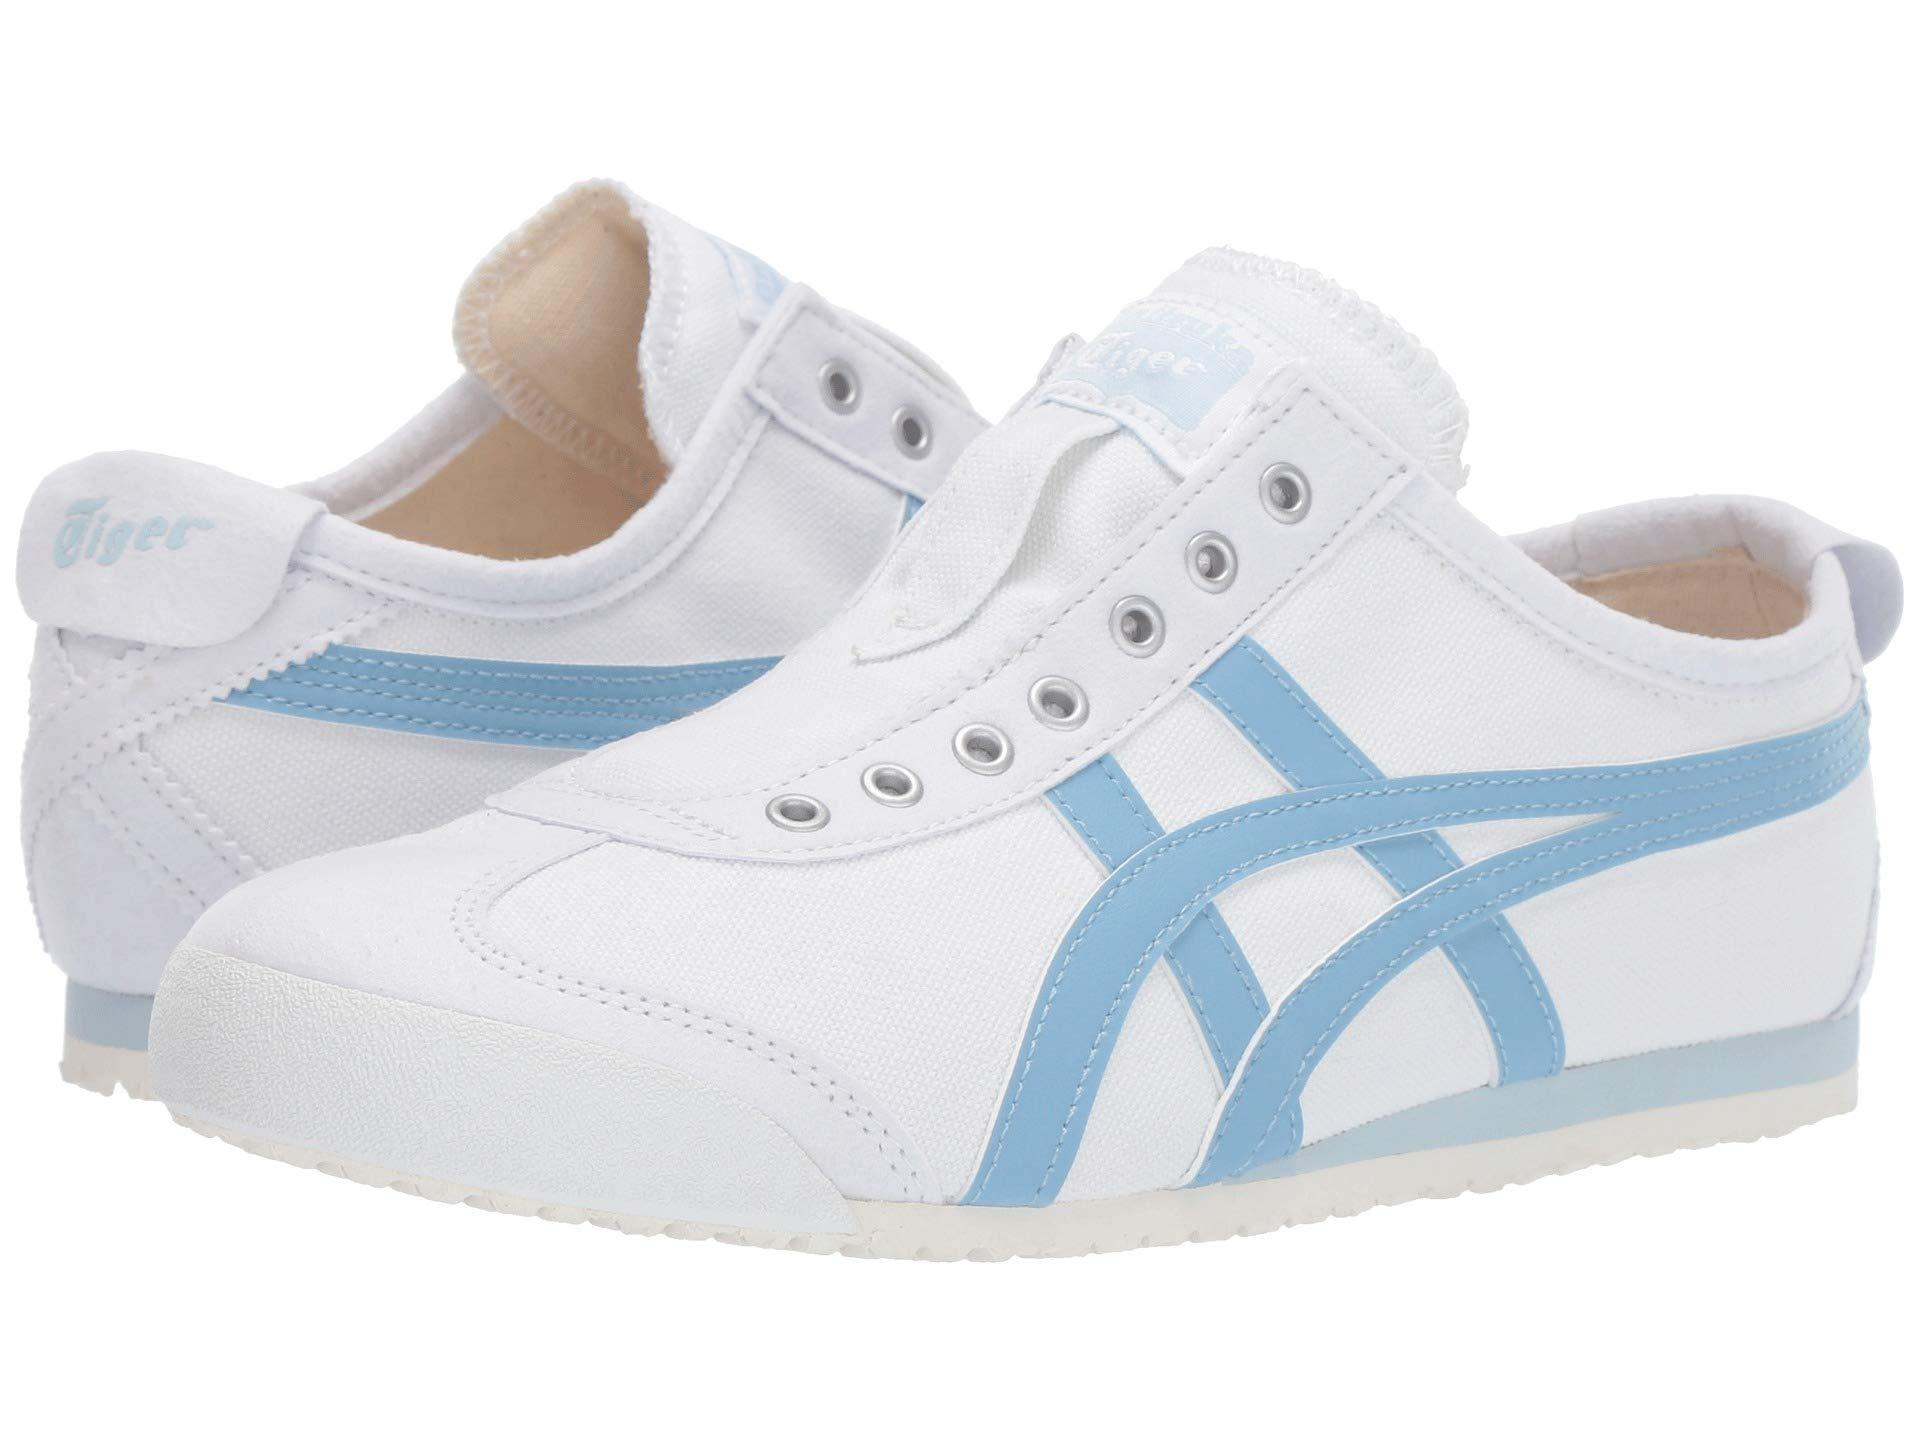 8fdd56e60a Onitsuka Tiger Mexico 66 Slip-on (white/sienna) Women's Shoes in ...